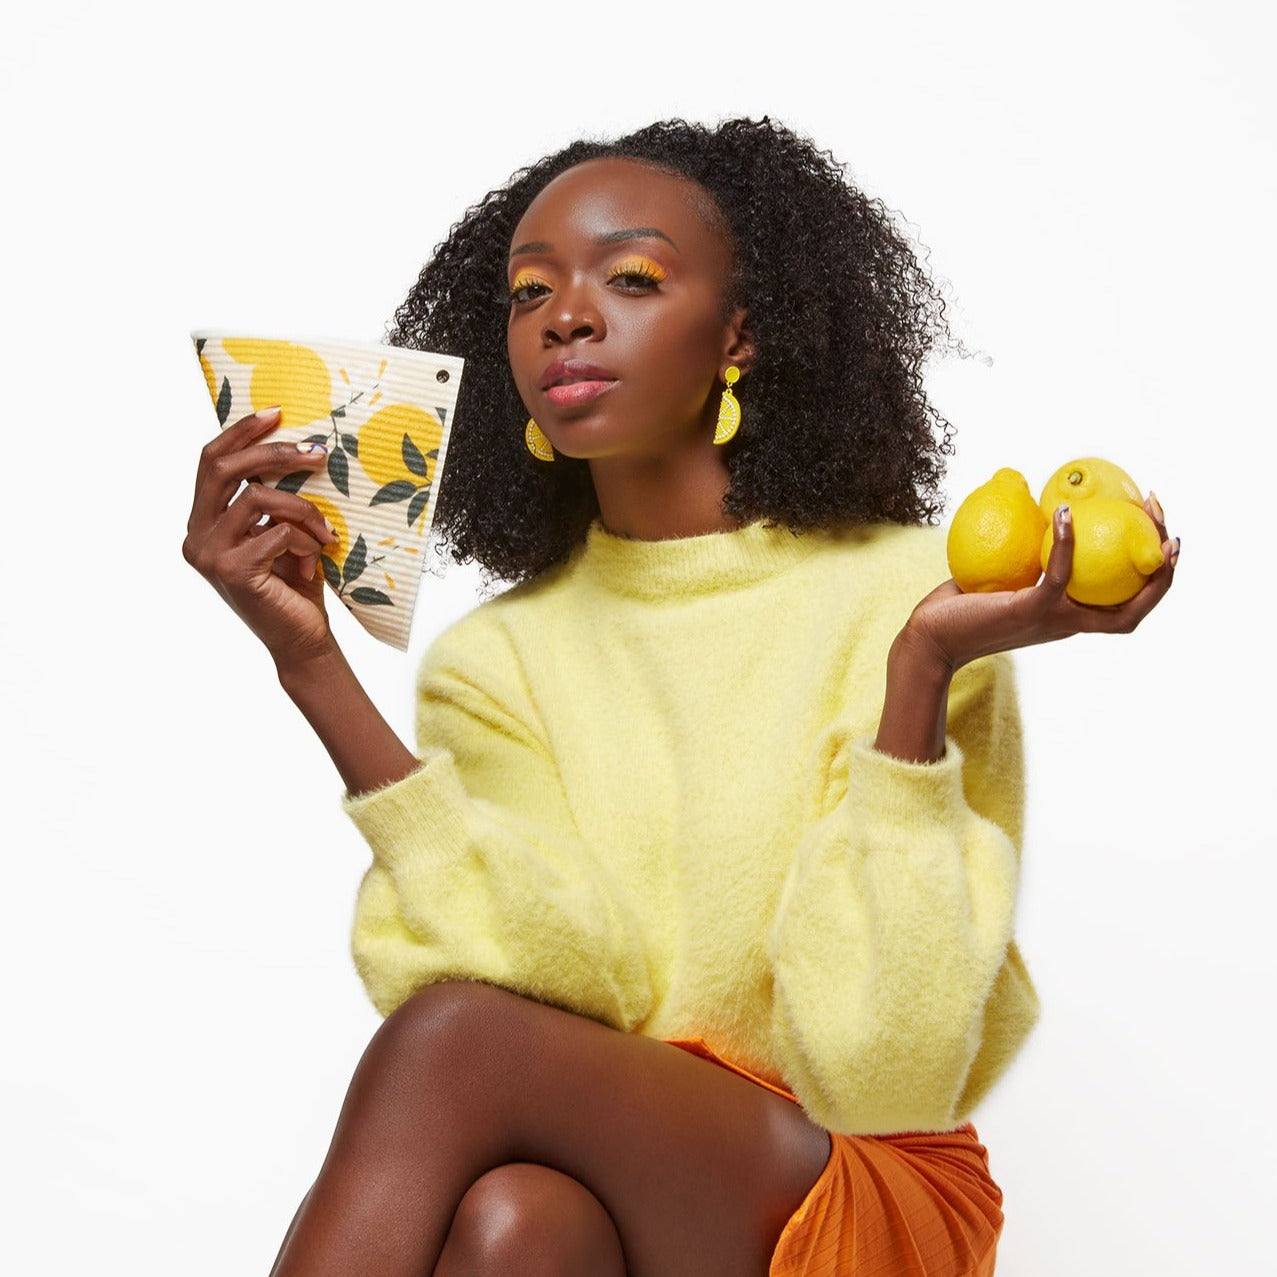 Model holding reusable paper towel with lemon design in one hand and three lemons in the other